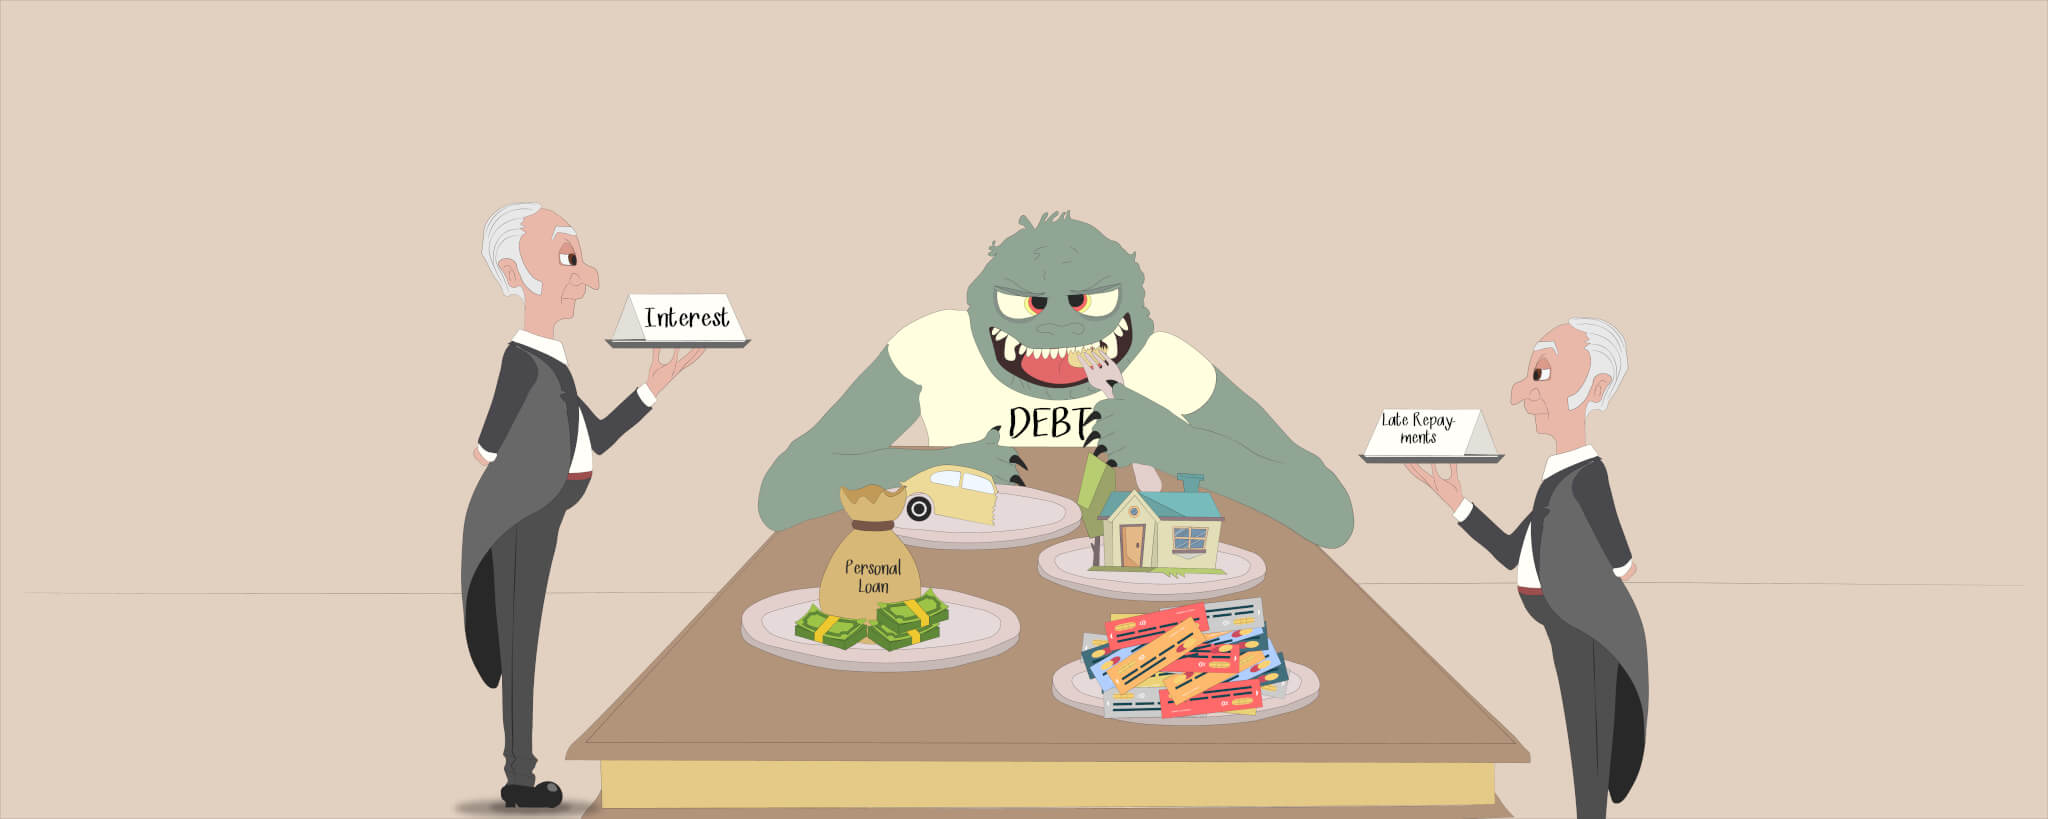 Do not feed the debt monster